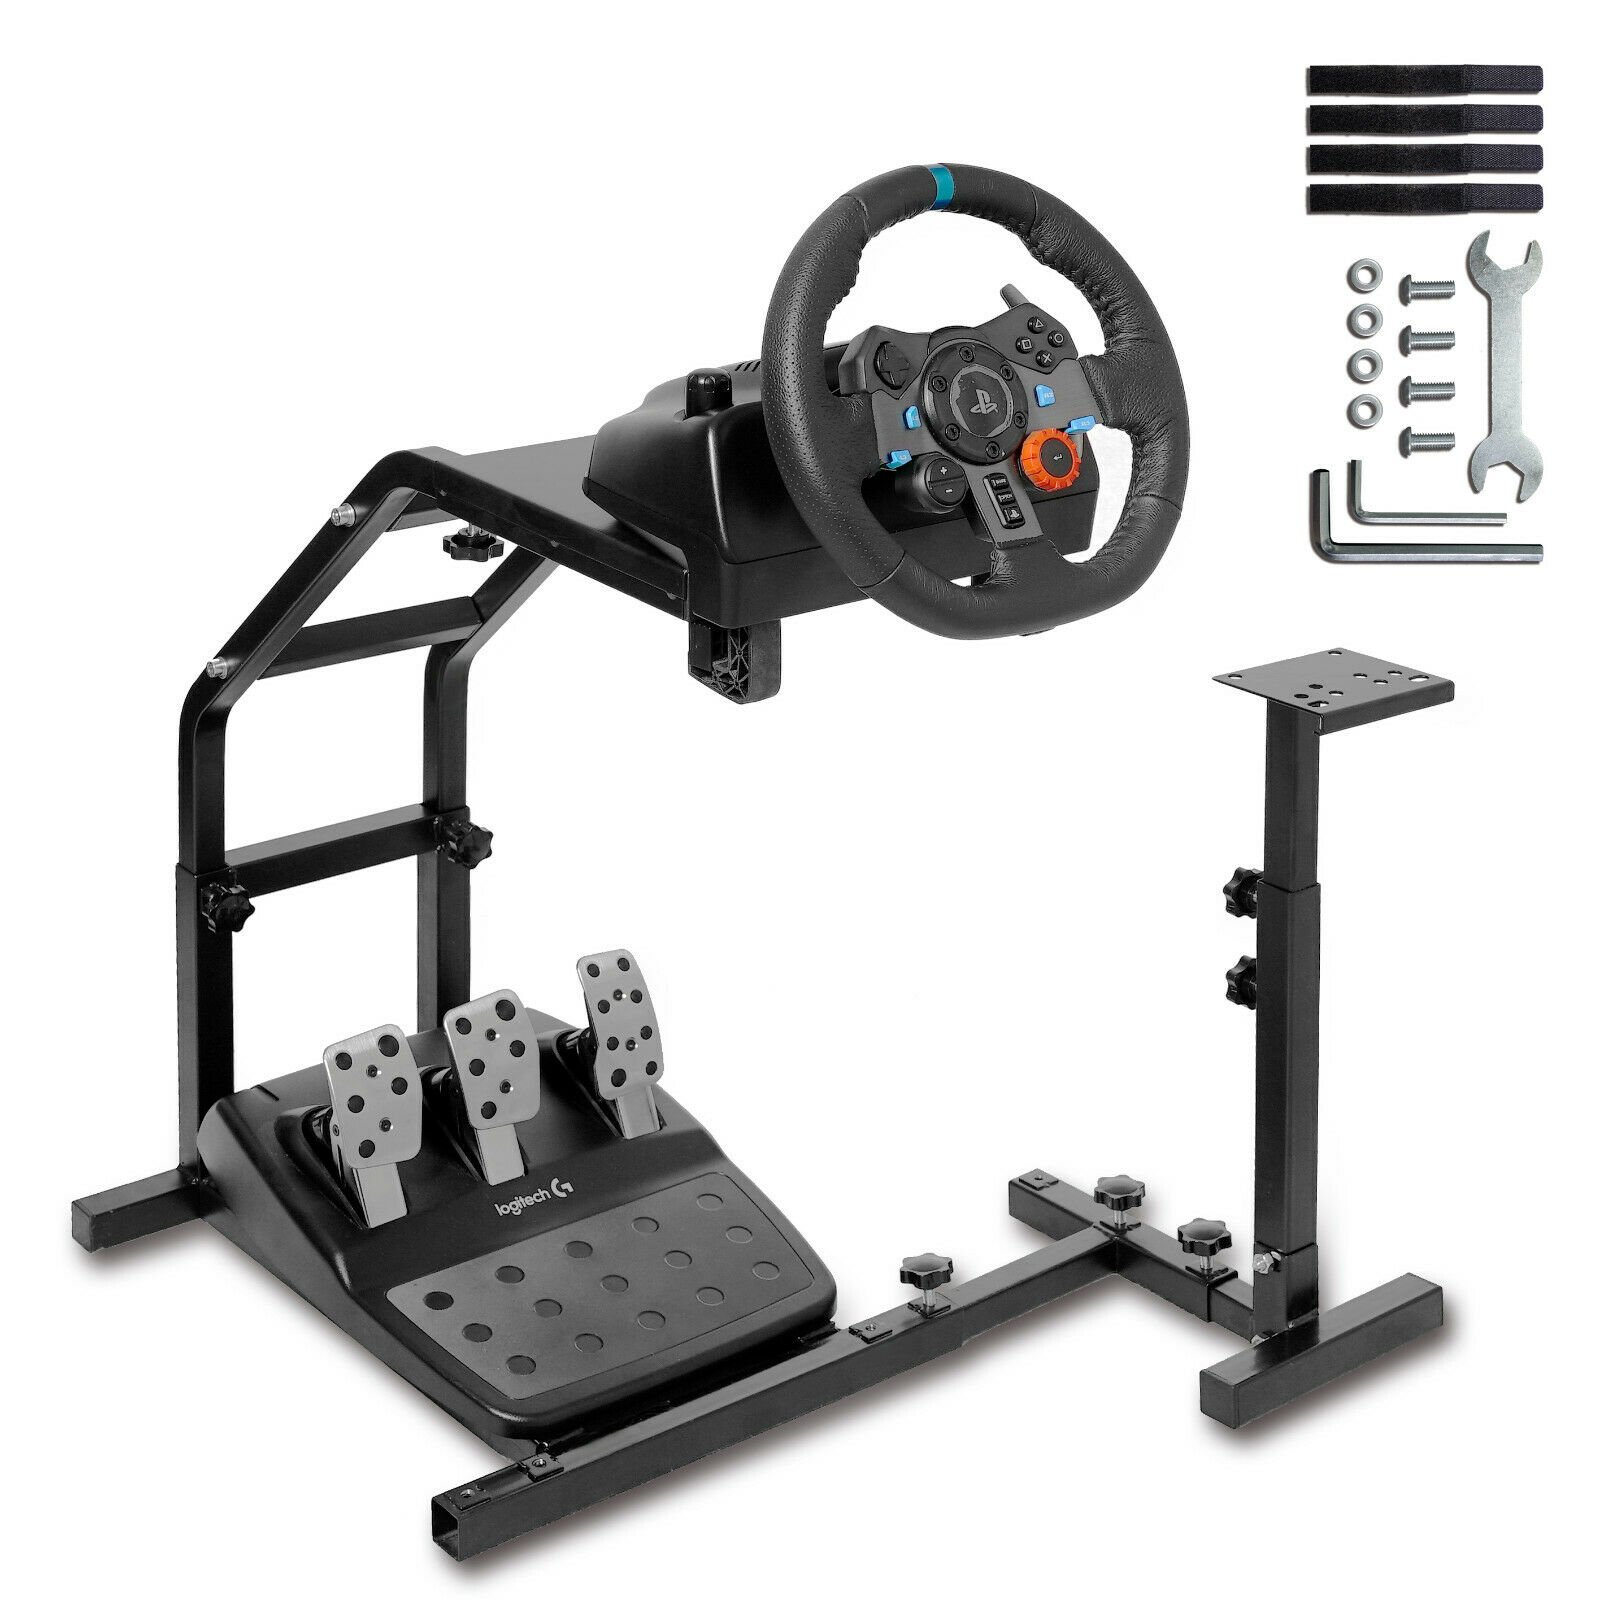 NEW Racing Simulator Steering Wheel Stand For G27 G29 PS4 G920 T300RS 458 T80